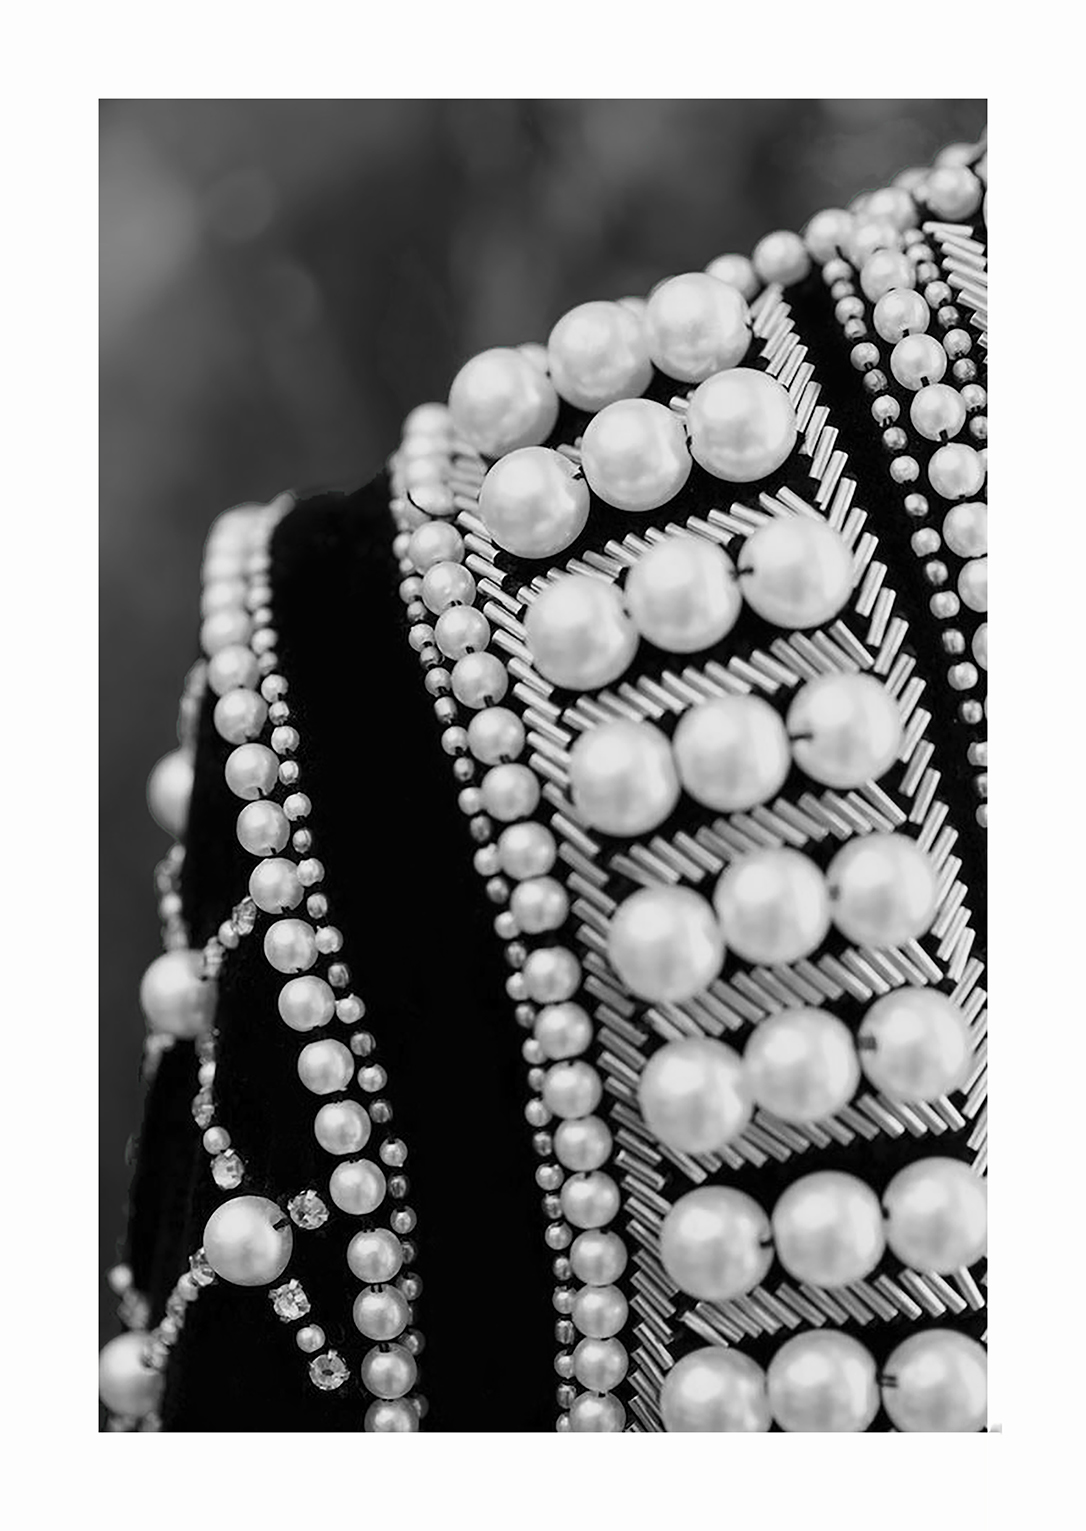 Hand seam of pearls, beads and tubes